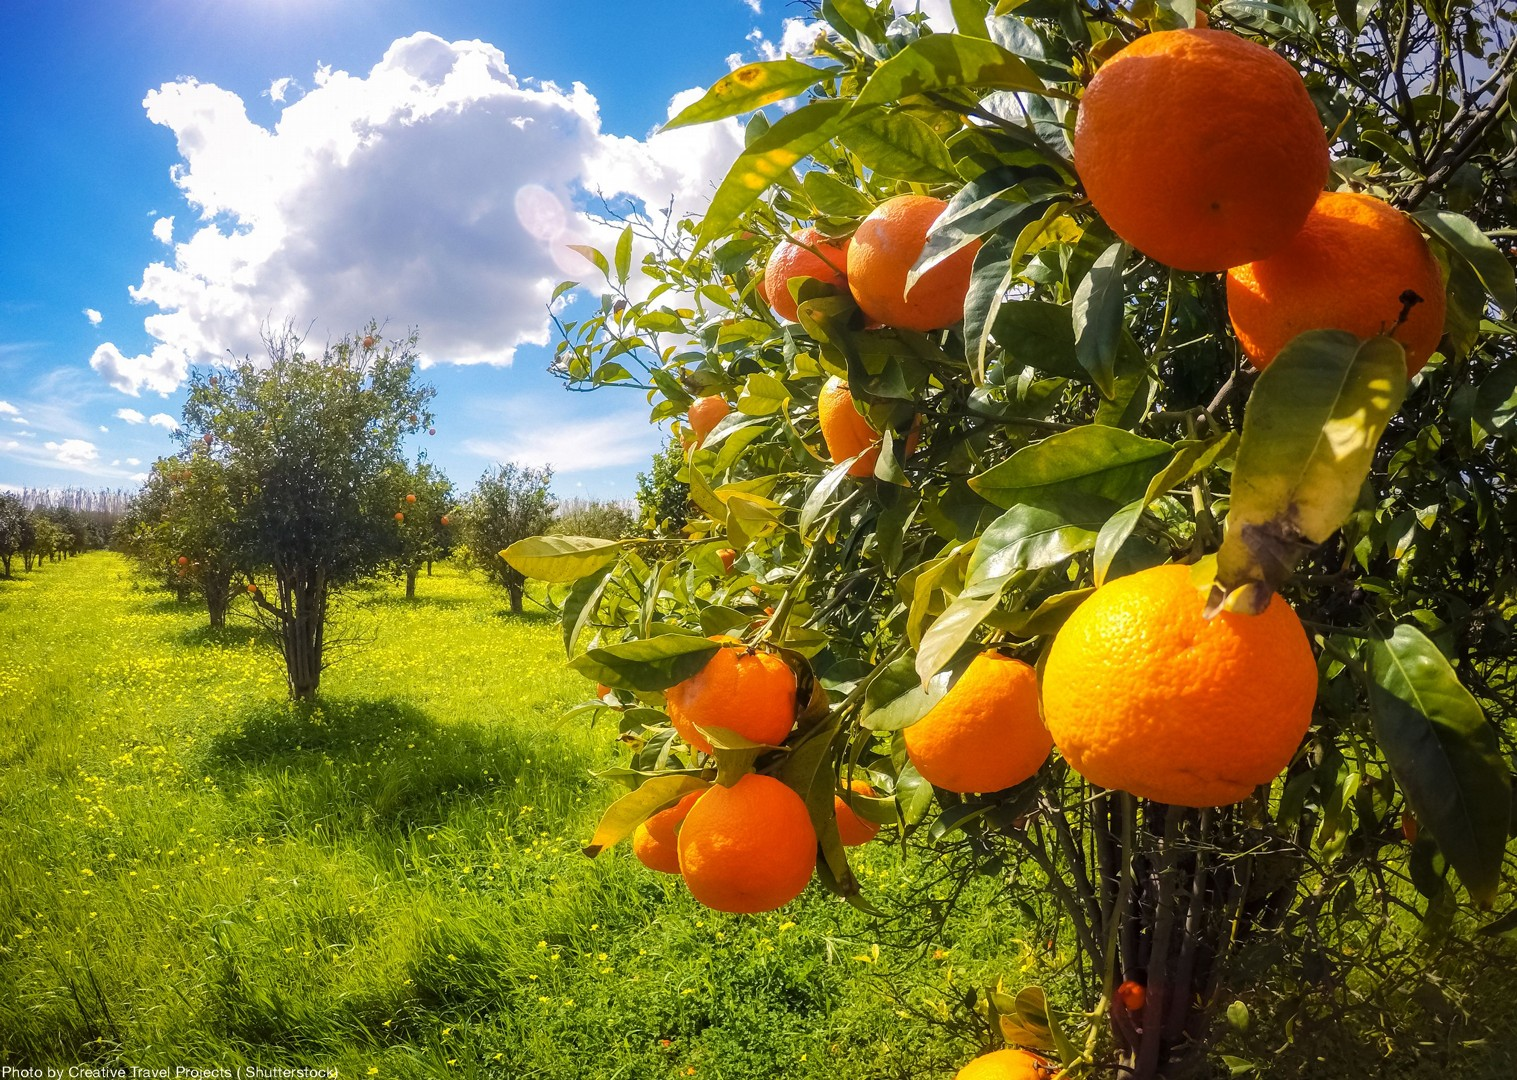 local-nature-orchards-italy-leisure-biking-fun.jpg - Italy - Sicily - Self-Guided Leisure Cycling Holiday - Italia Leisure and Family Cycling